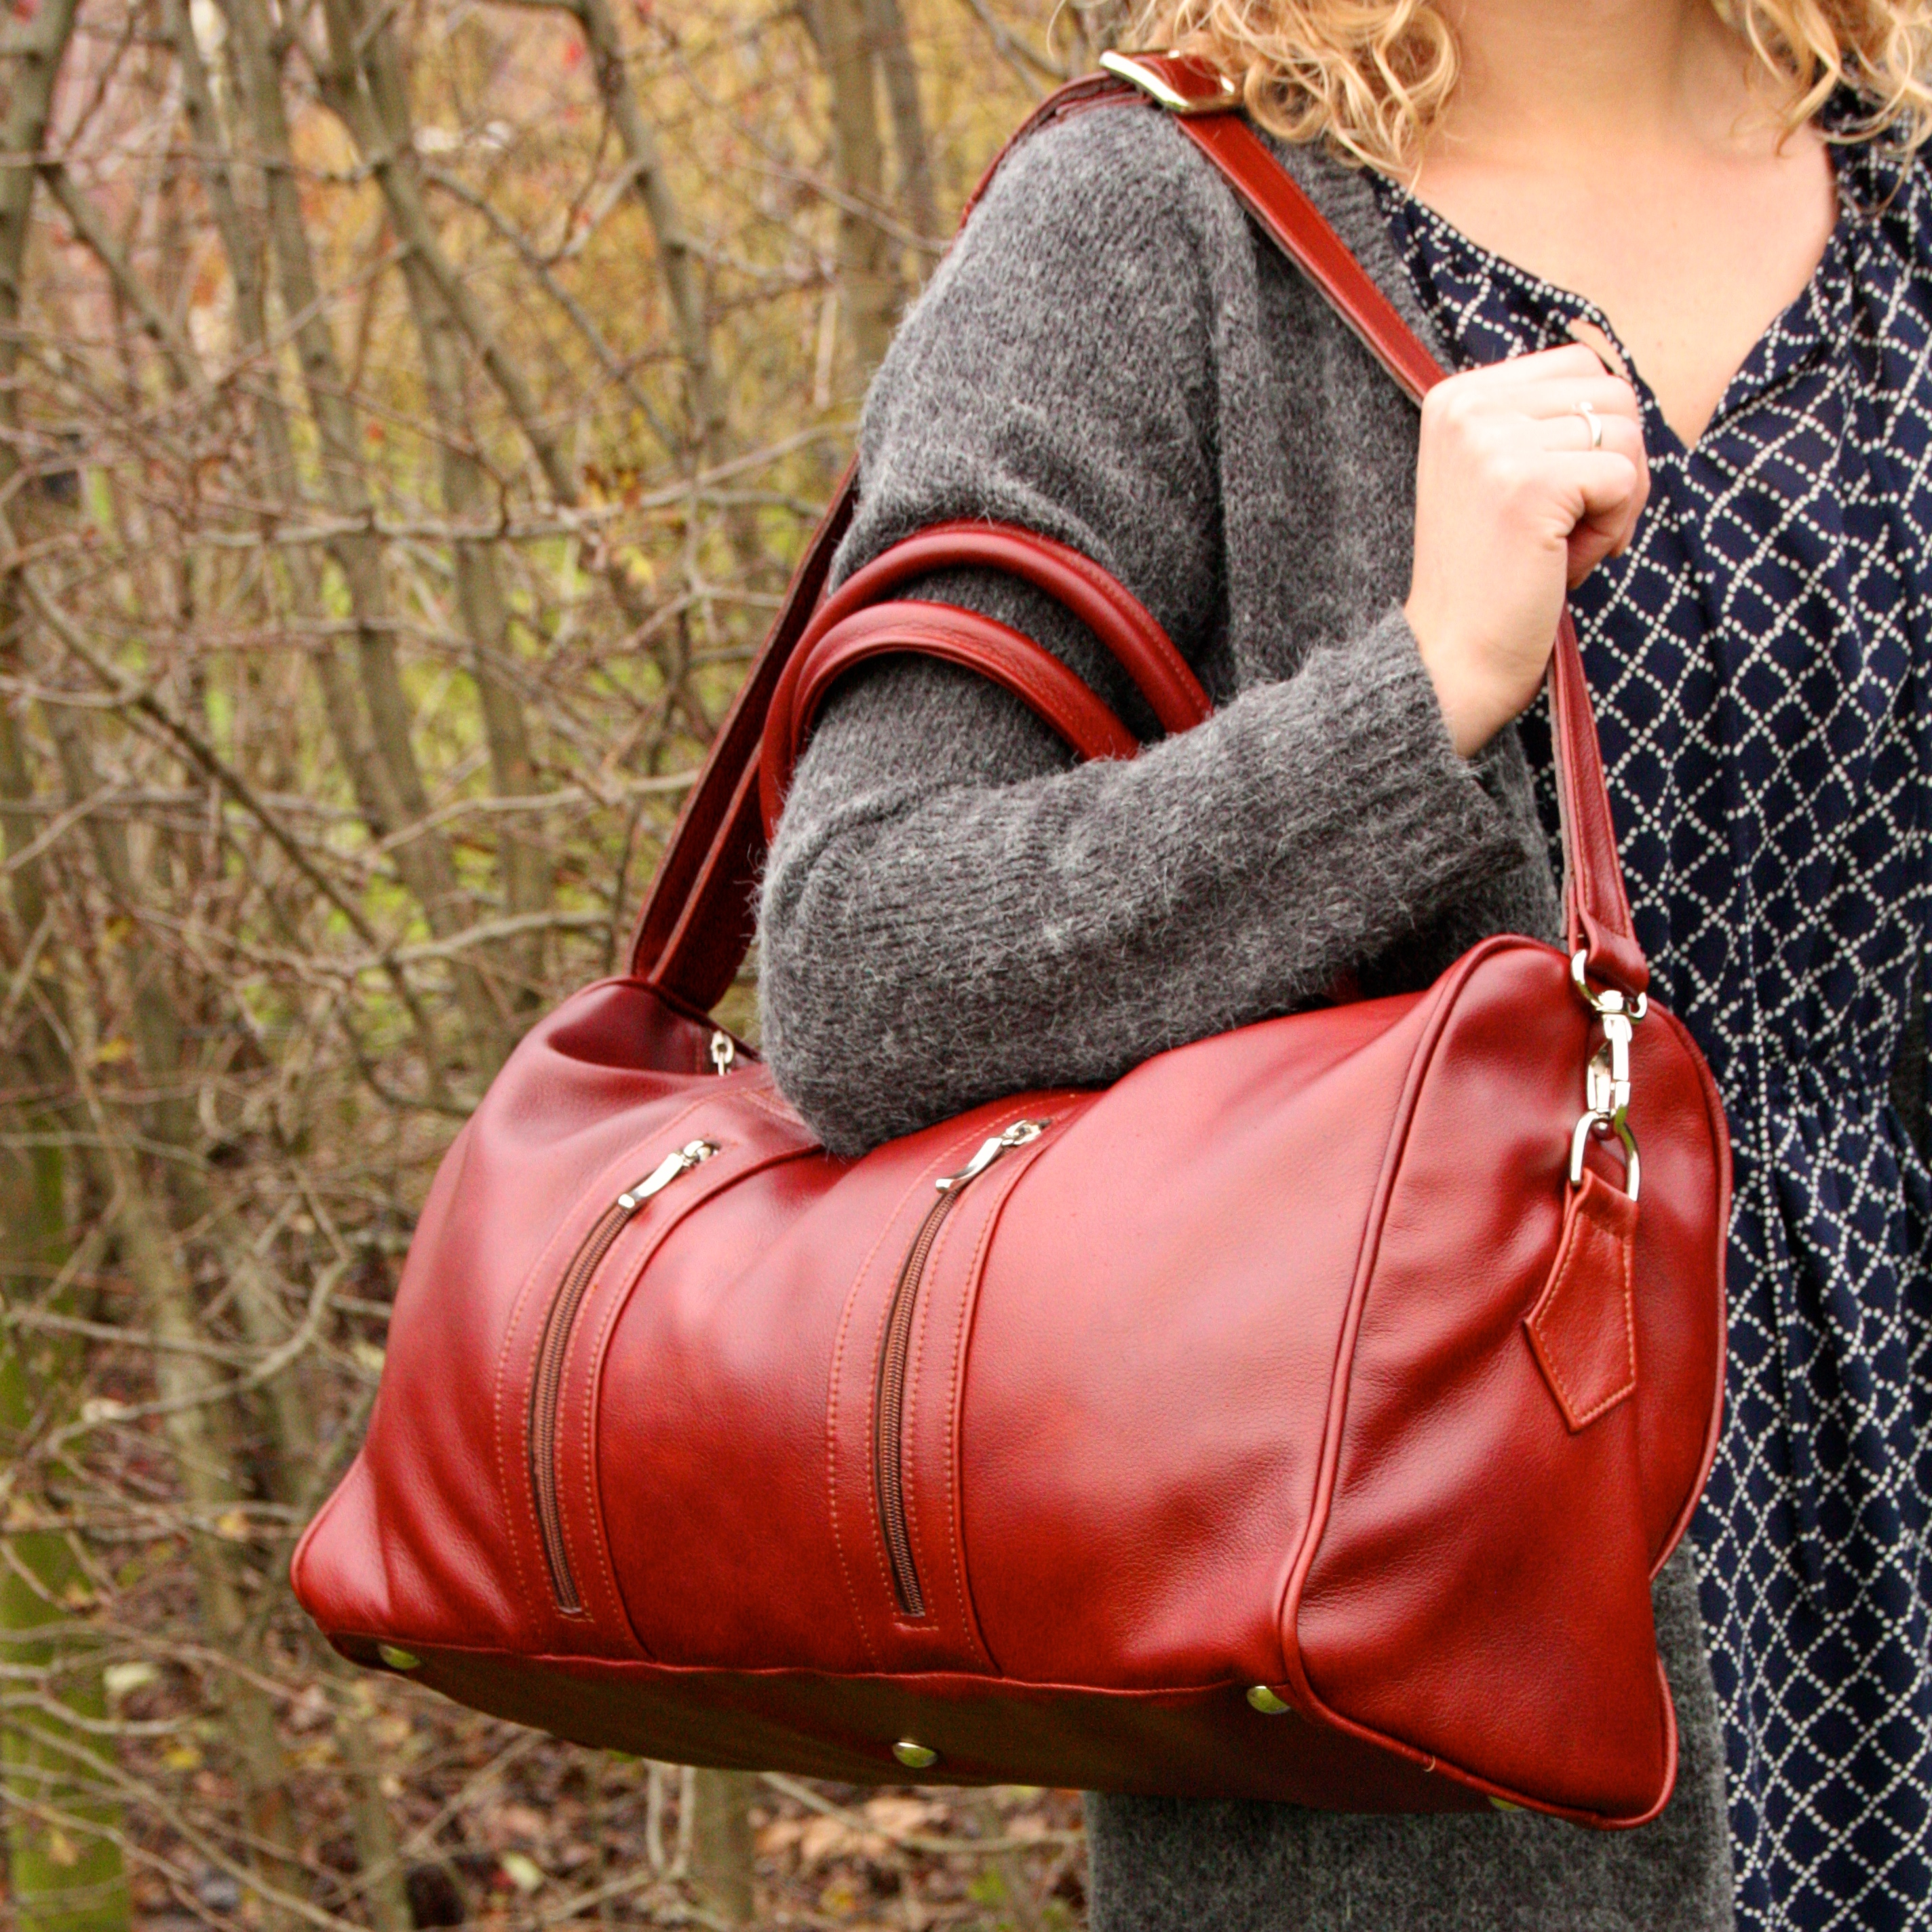 leather weekend bag | Handmade by Vank Design